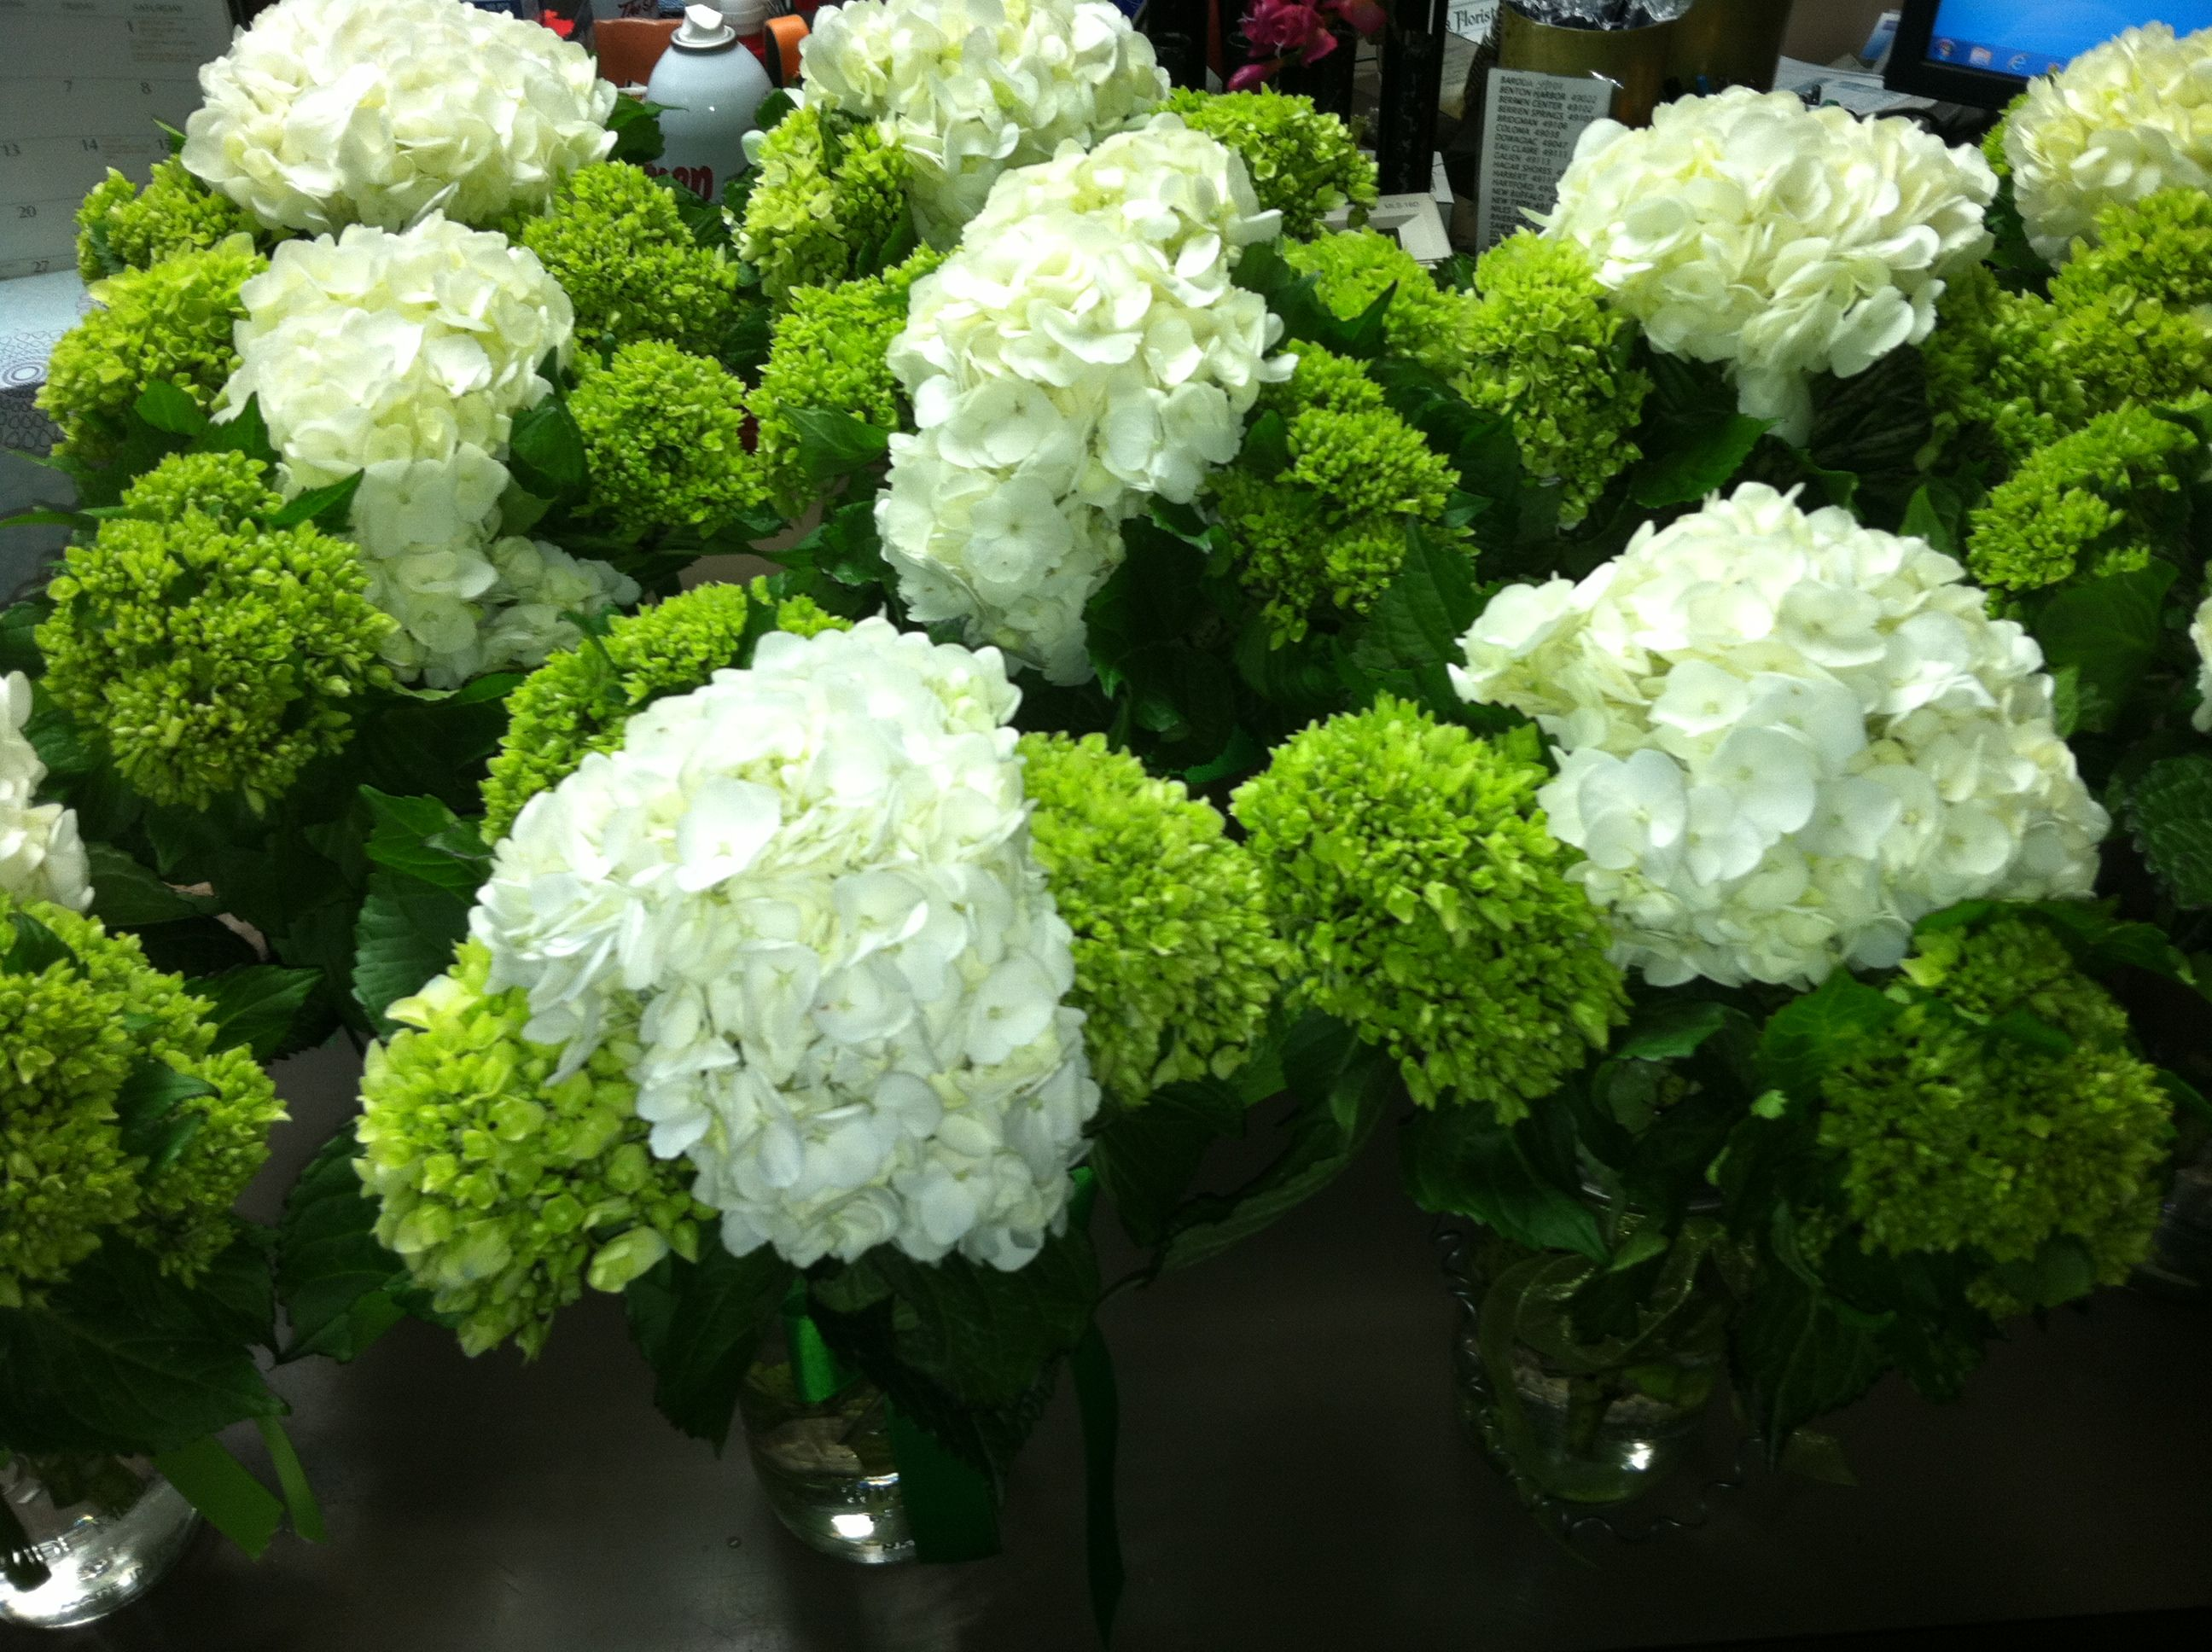 Green and white hydrangea centerpieces in mason jars